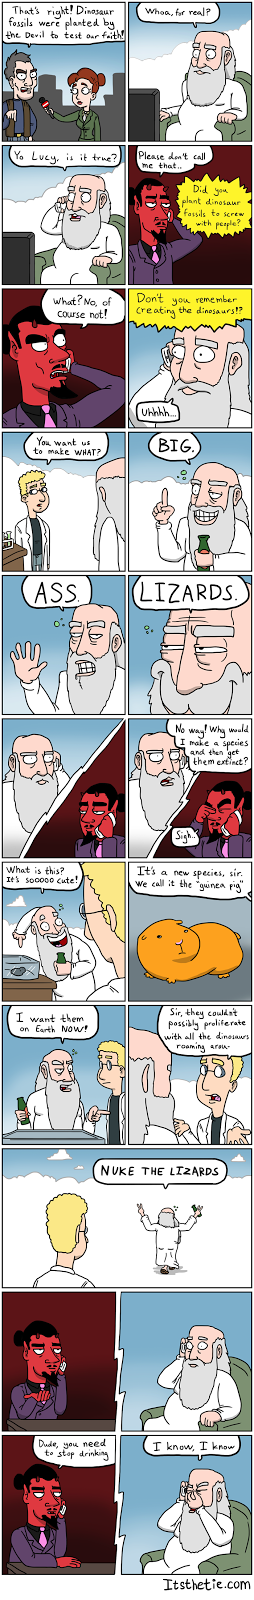 Amusing comic about God creating dinosaurs